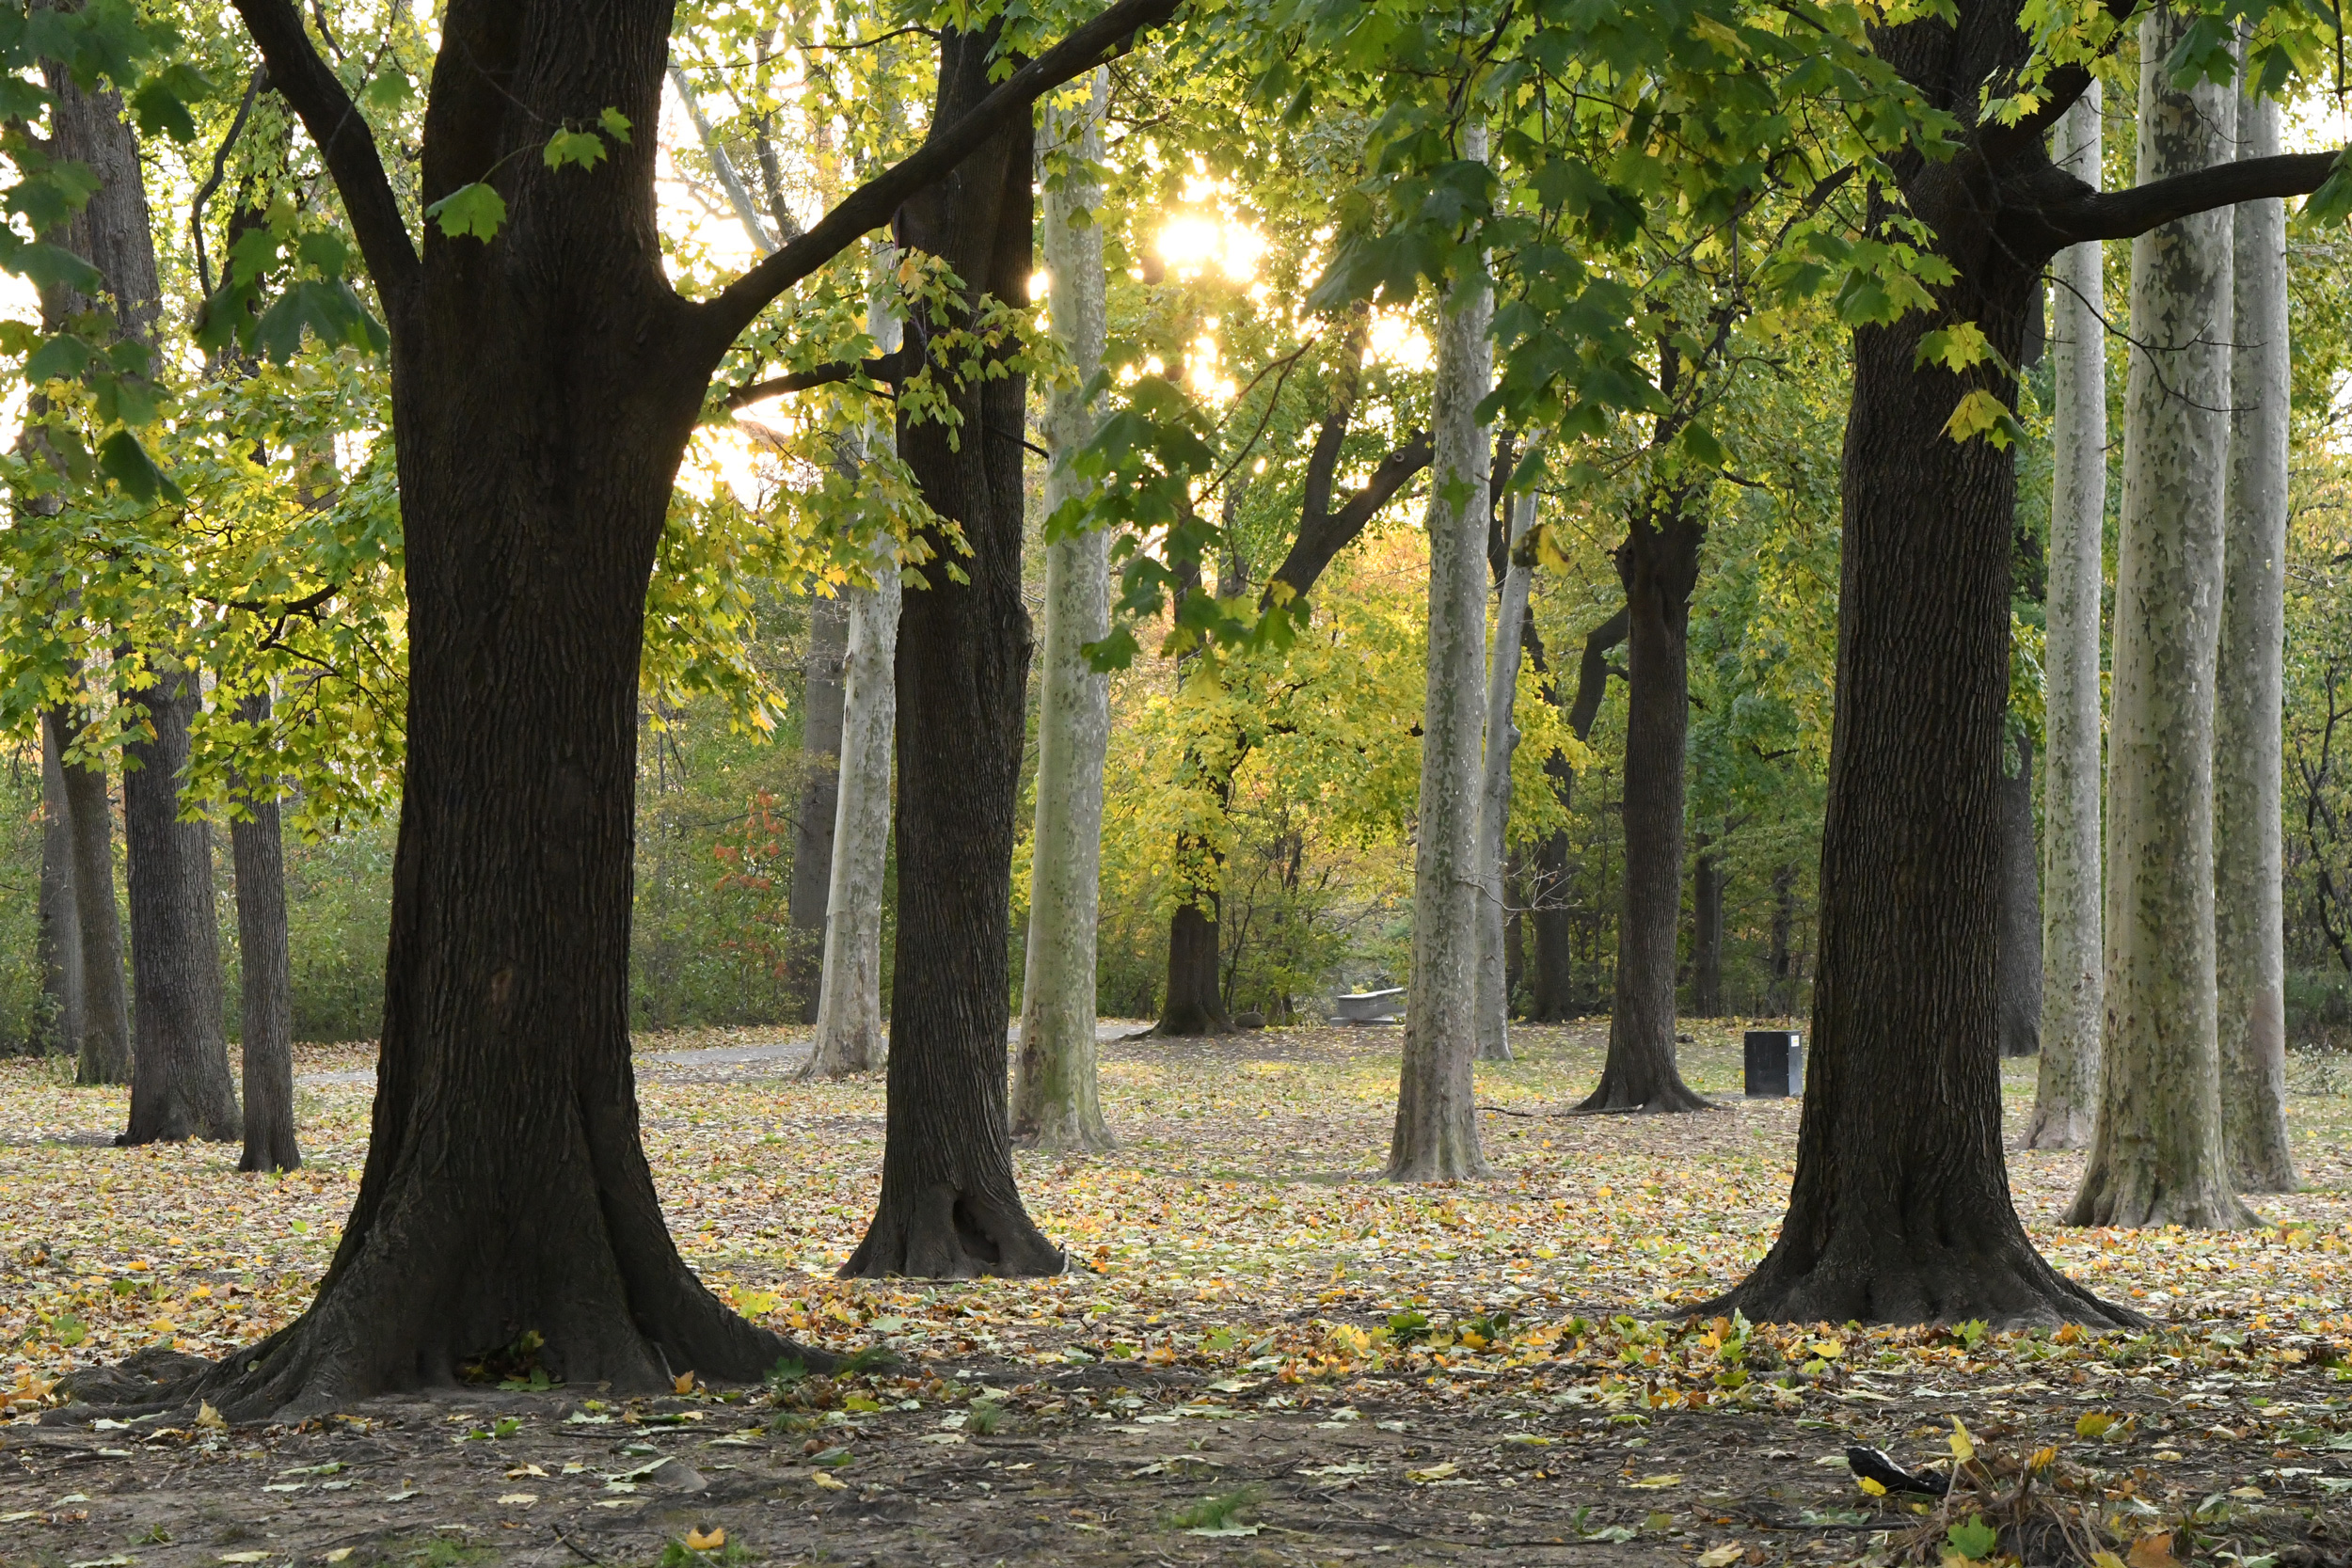 Grove of maples and sycamores, Prospect Park